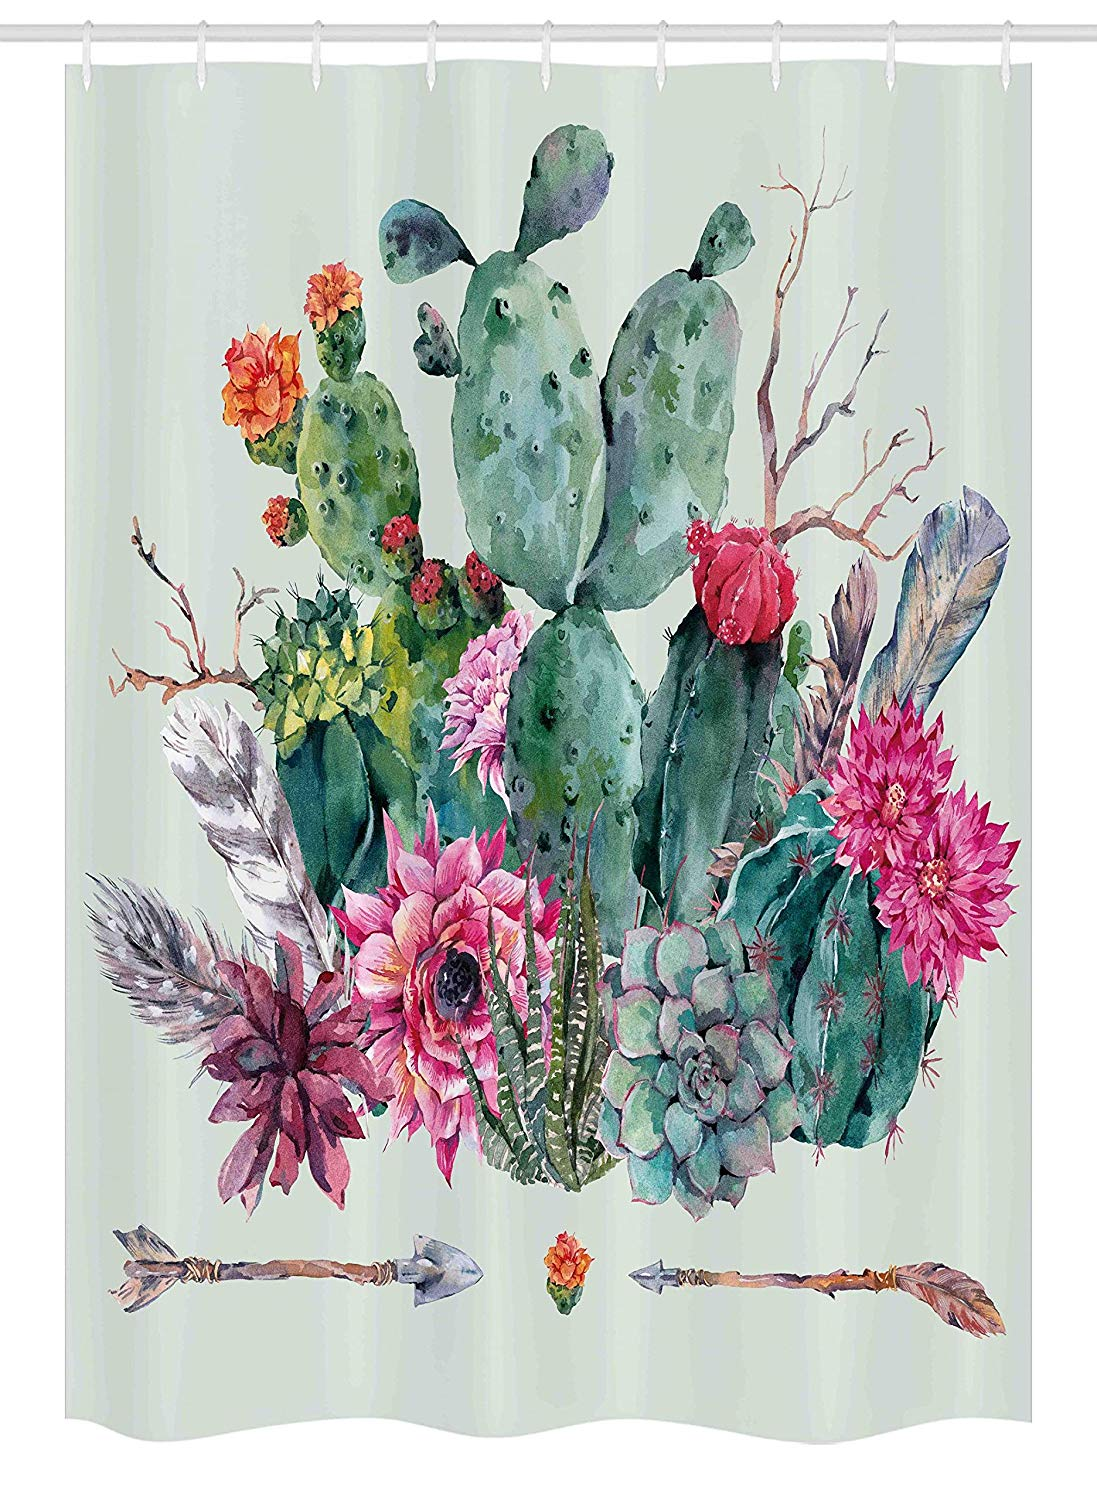 "Ambesonne Cactus Stall Shower Curtain, Spring Garden with Boho Style Bouquet of Thorny Plants Blossoms Arrows Feathers, Fabric Bathroom Decor Set with Hooks, 54"" X 78"", White Pearl"